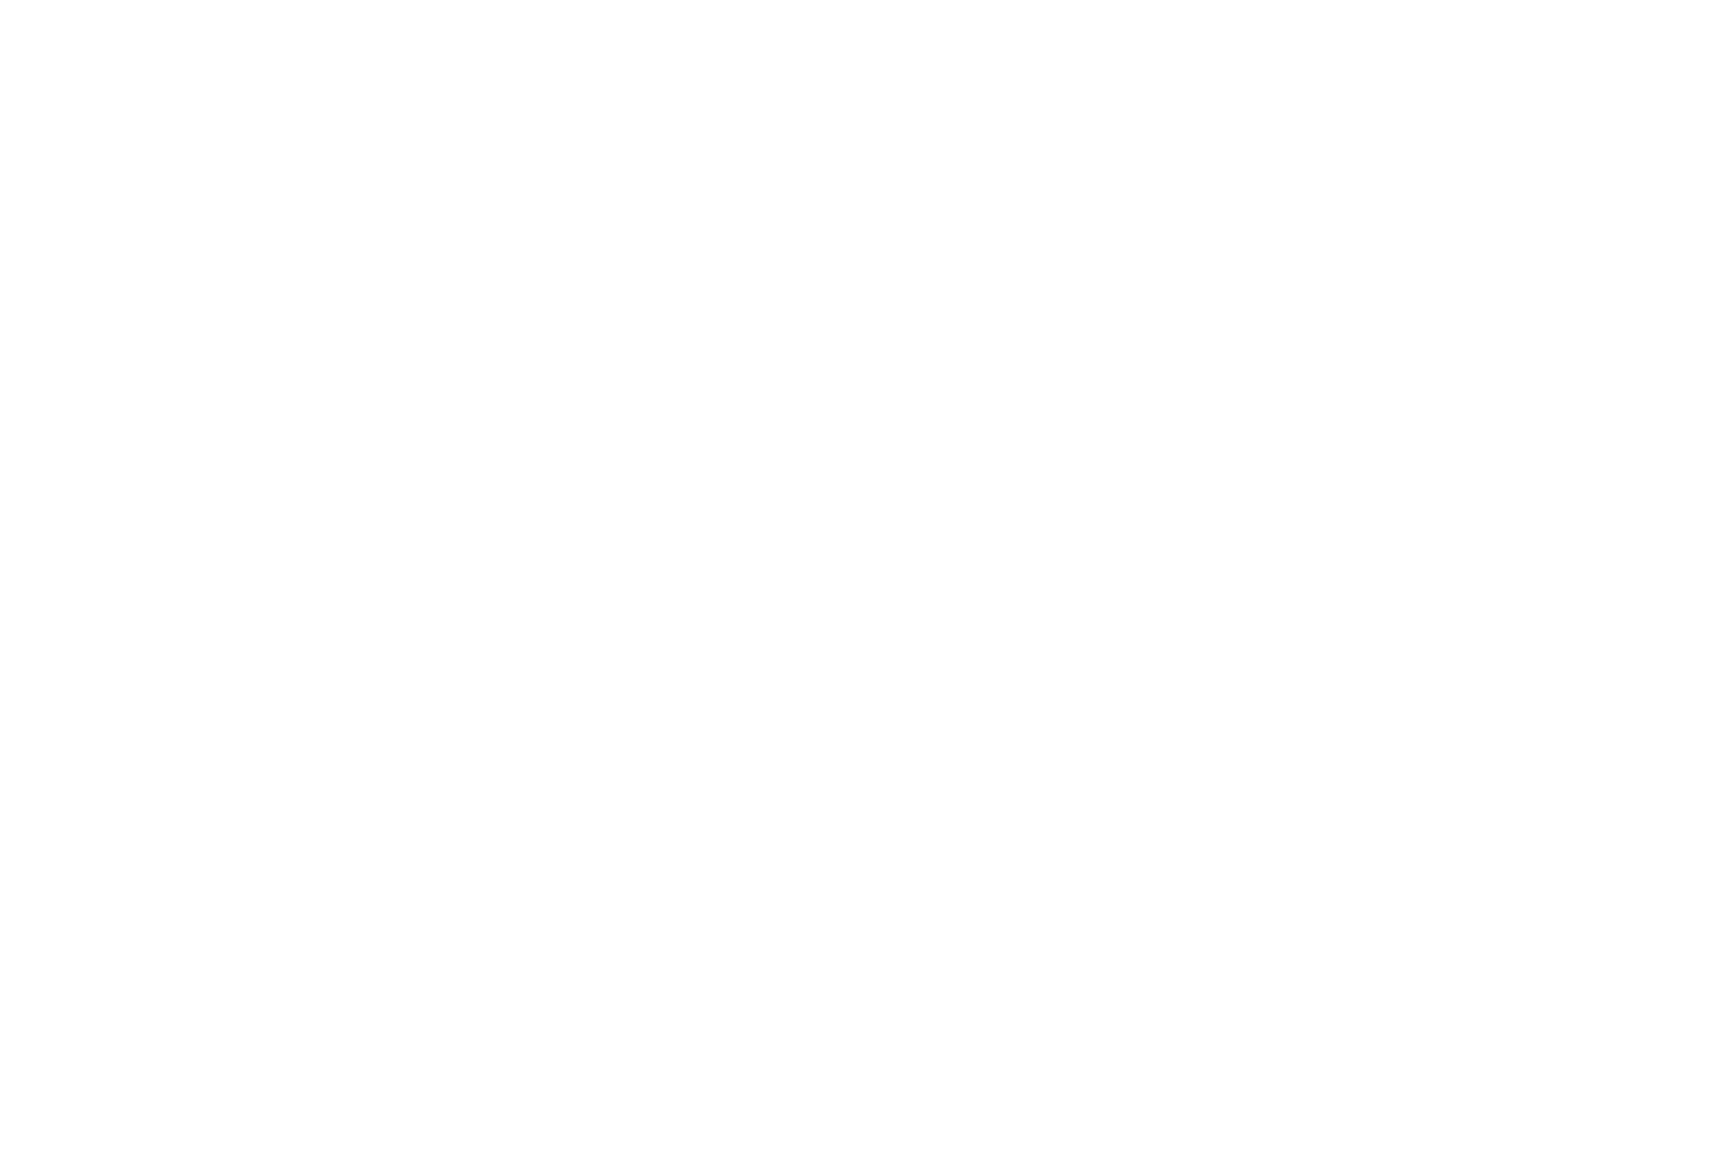 SEMI-FINALIST - Gimme Credit VIII Screenplay Competition